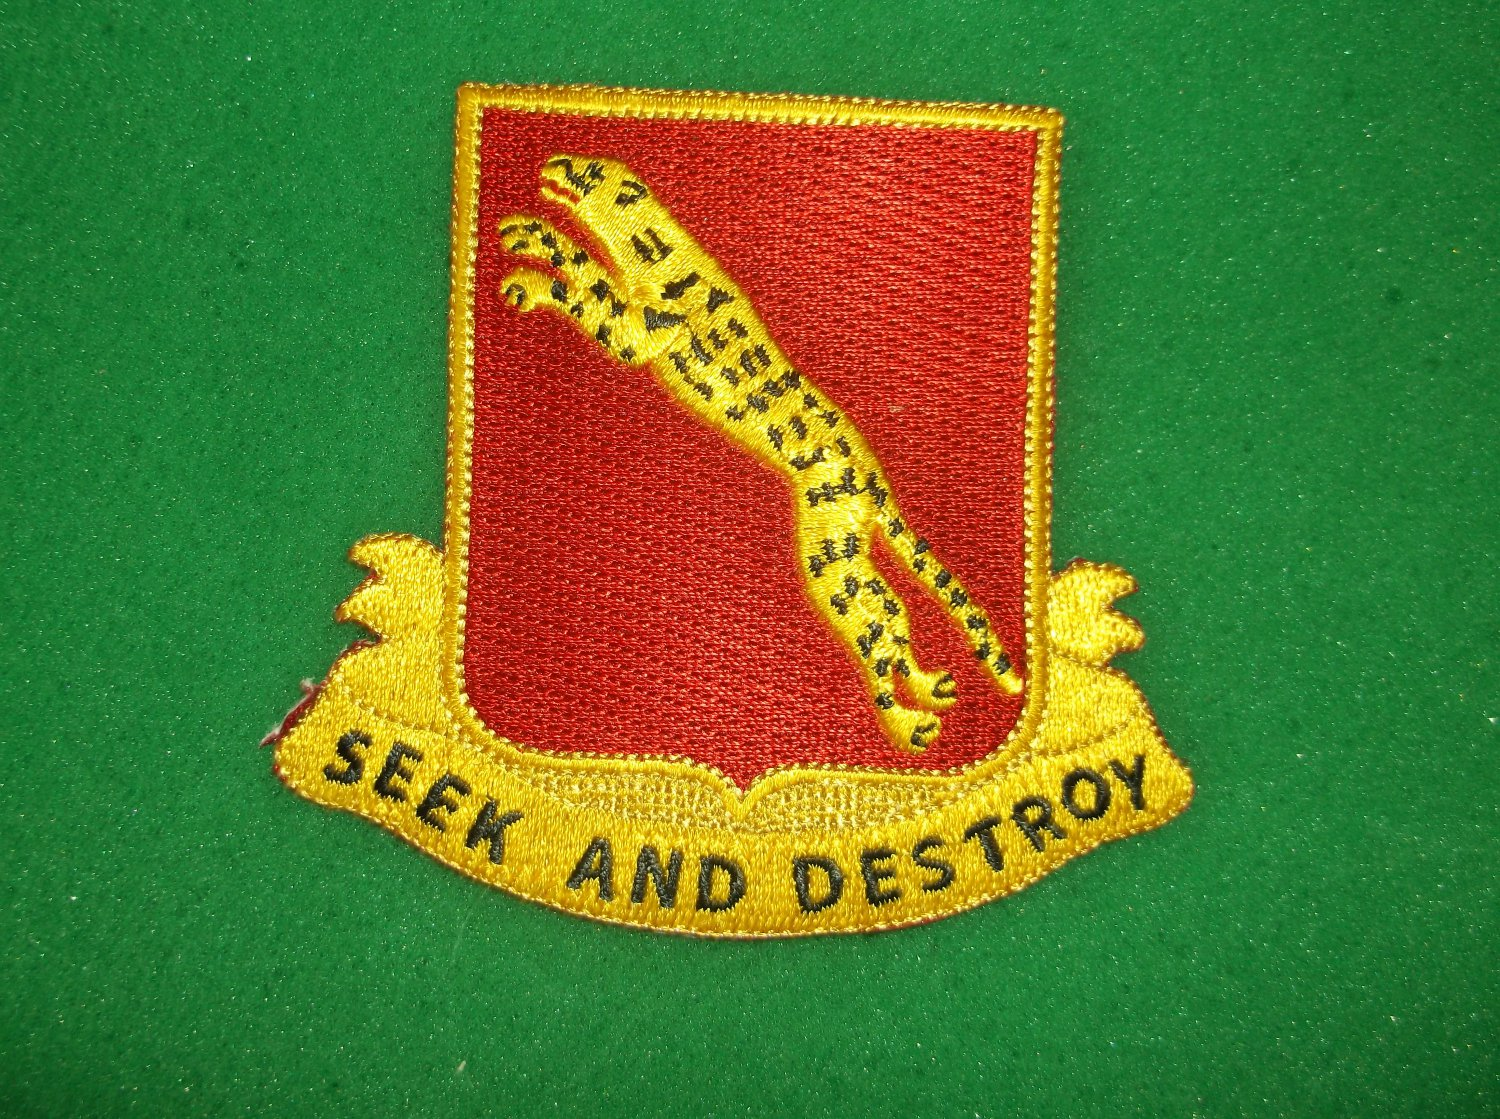 138TH ARMORED CAVALRY REGIMENT PATCH